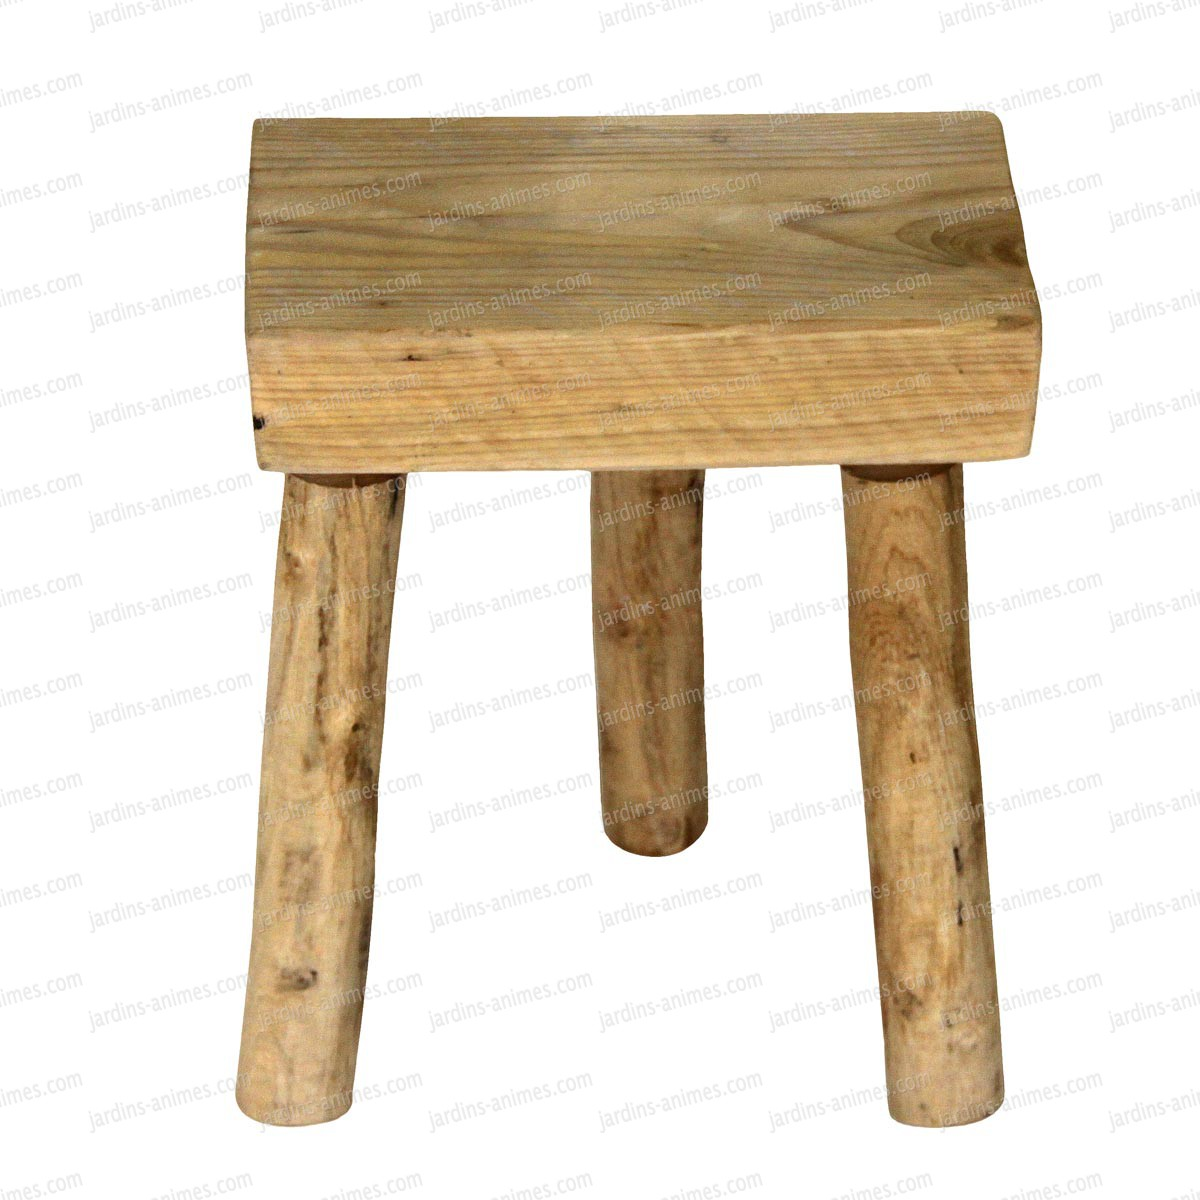 tabouret en bois 3 pieds 33cm x 22cm mobilier de jardin. Black Bedroom Furniture Sets. Home Design Ideas